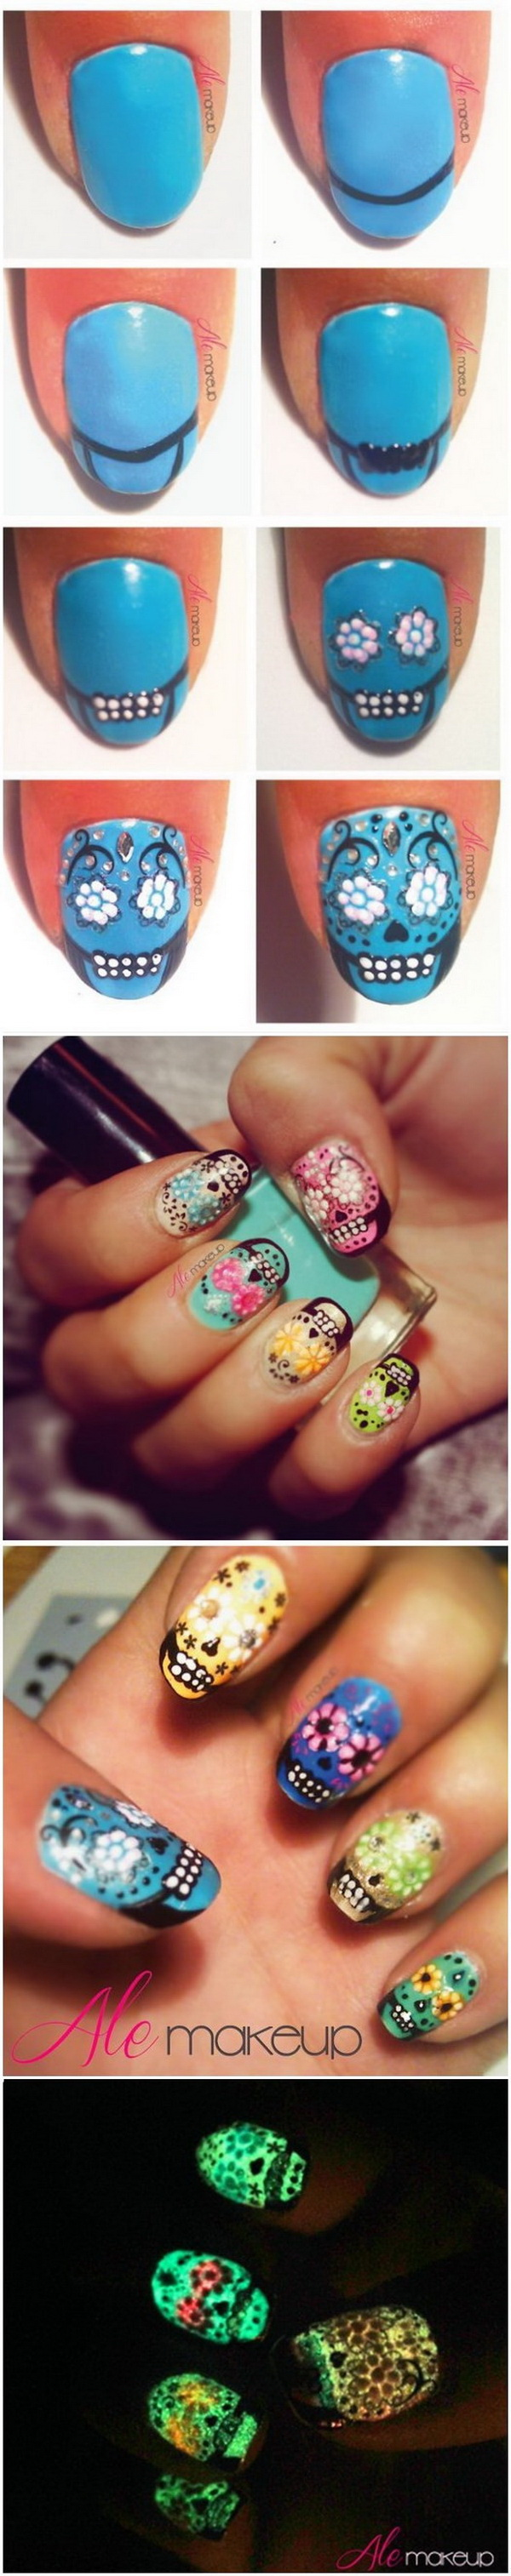 DIY Sugar Skulls Nail Design.